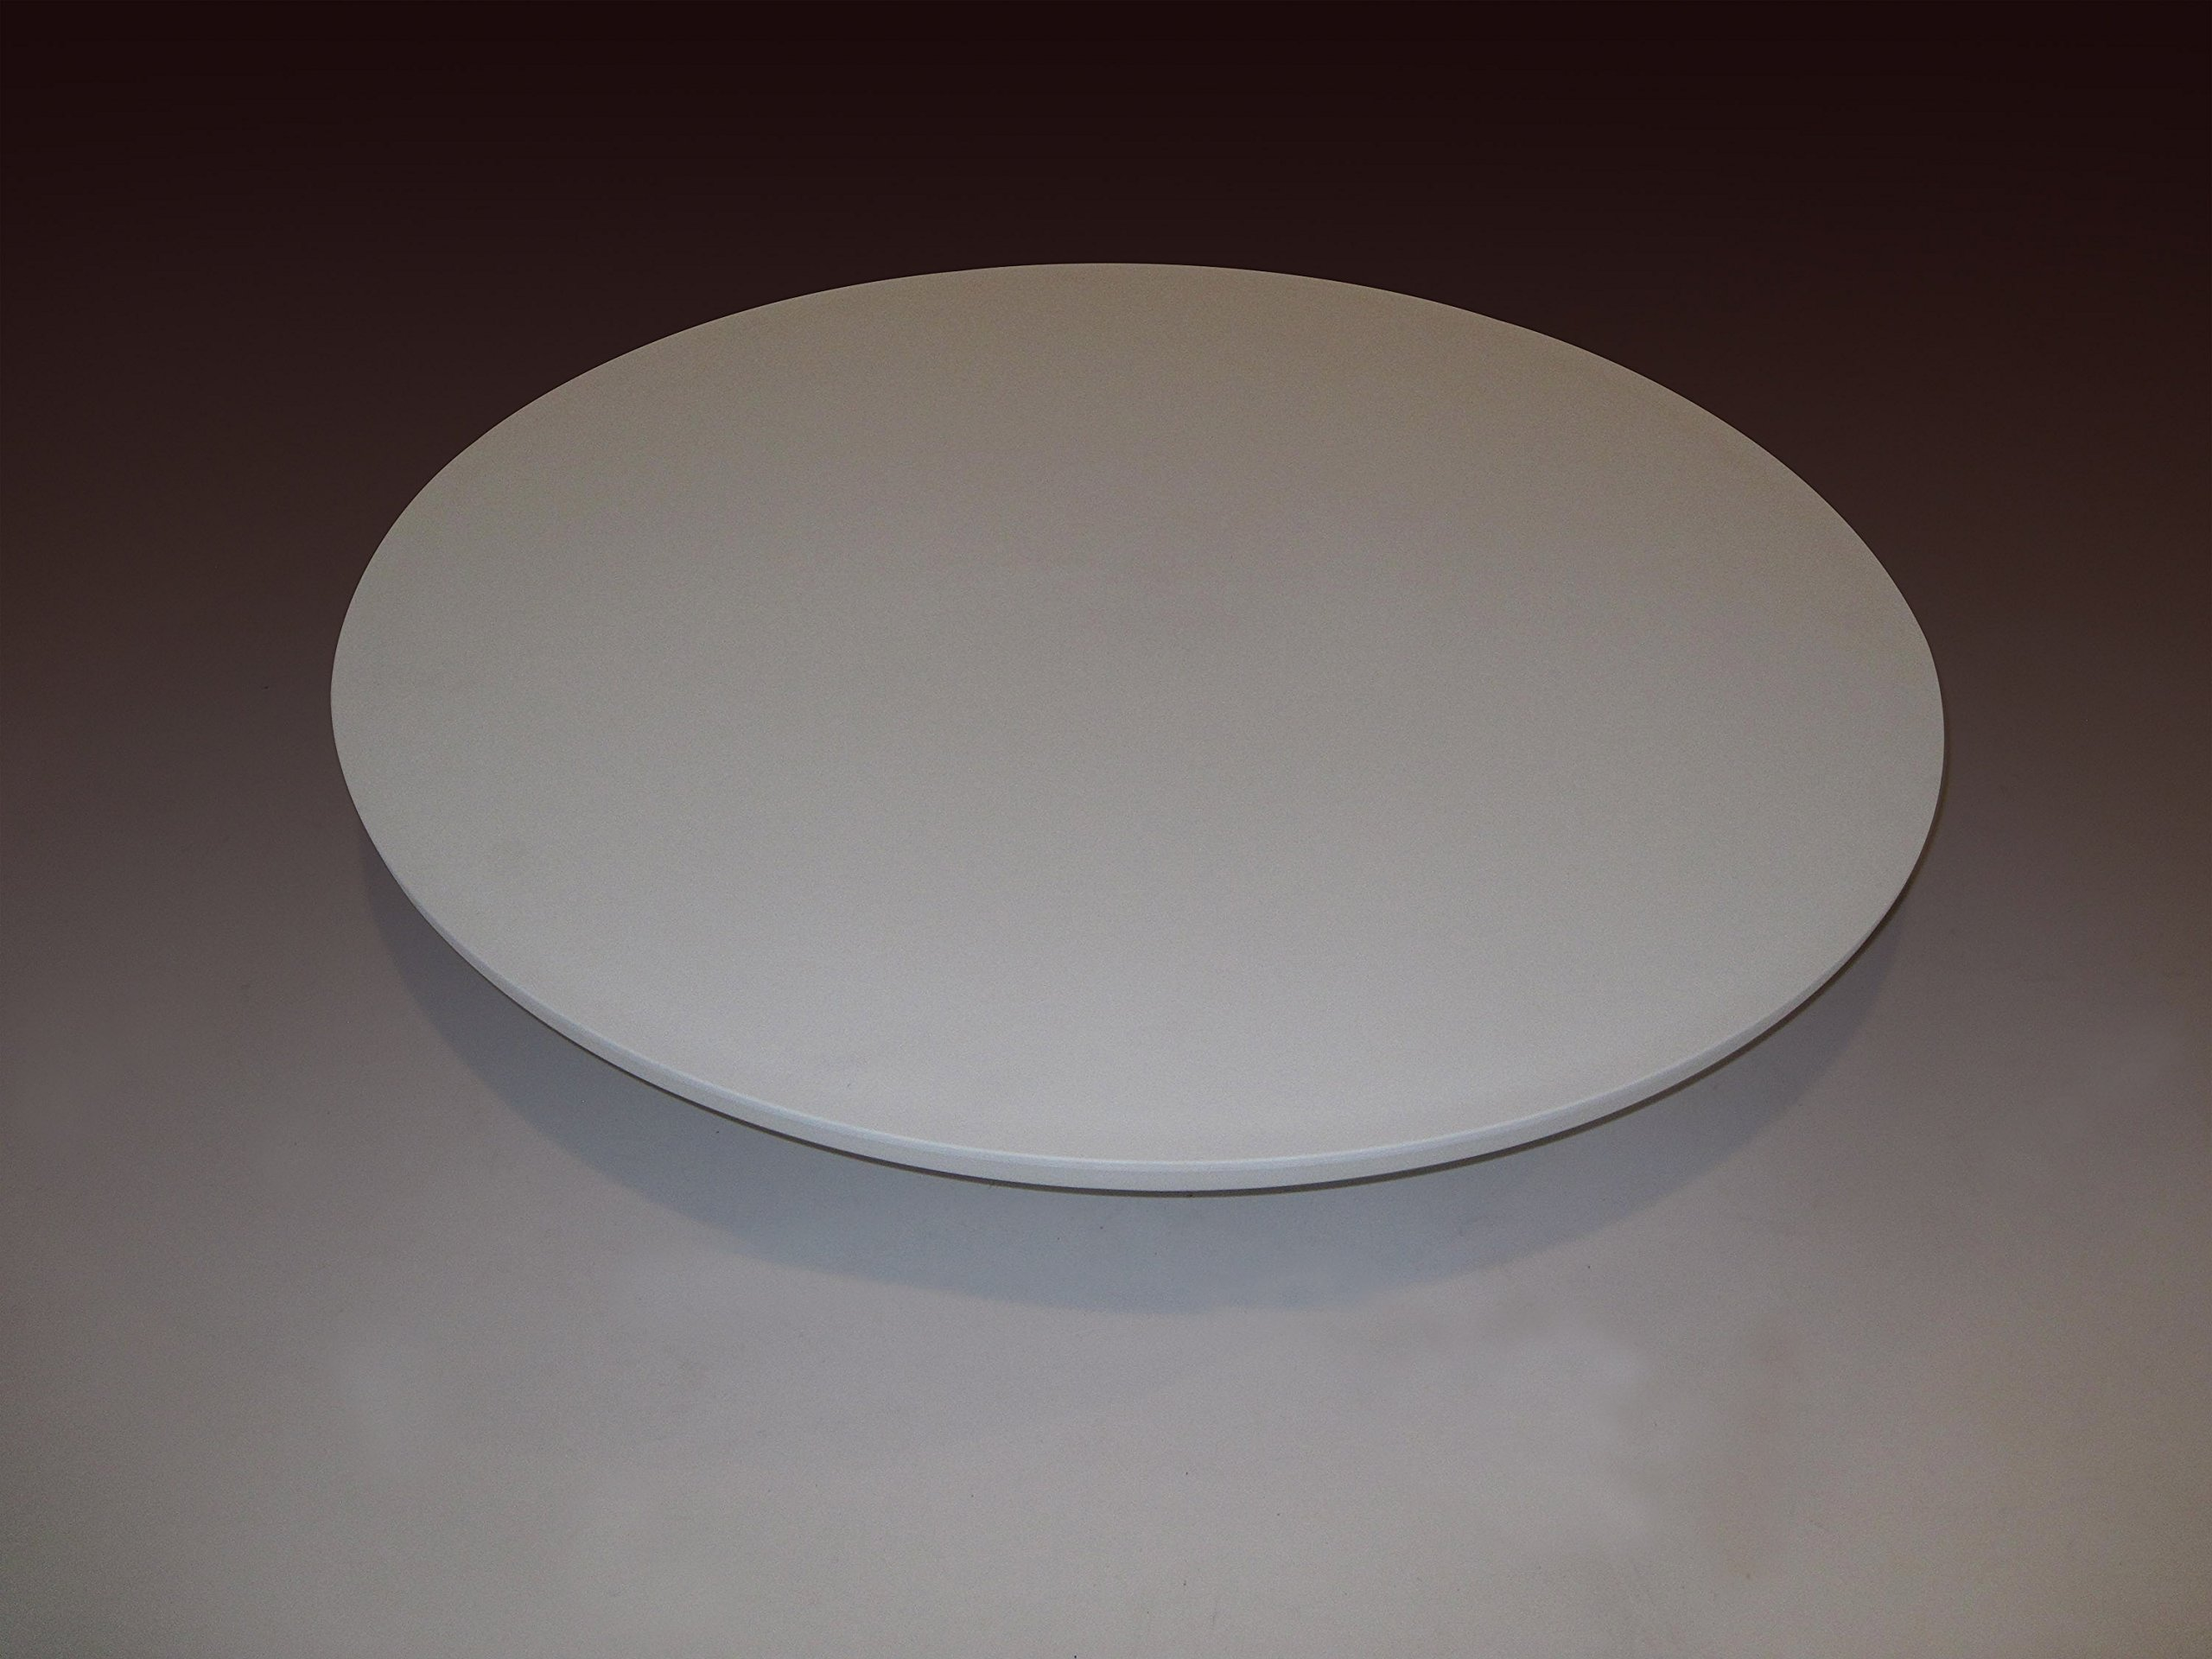 28'' WHITE round commercial grade table top, outdoor/indoor, technopolymer fiberglass reinforced, for restaurant and catering - can be adapted to most leg systems. Heavy Duty